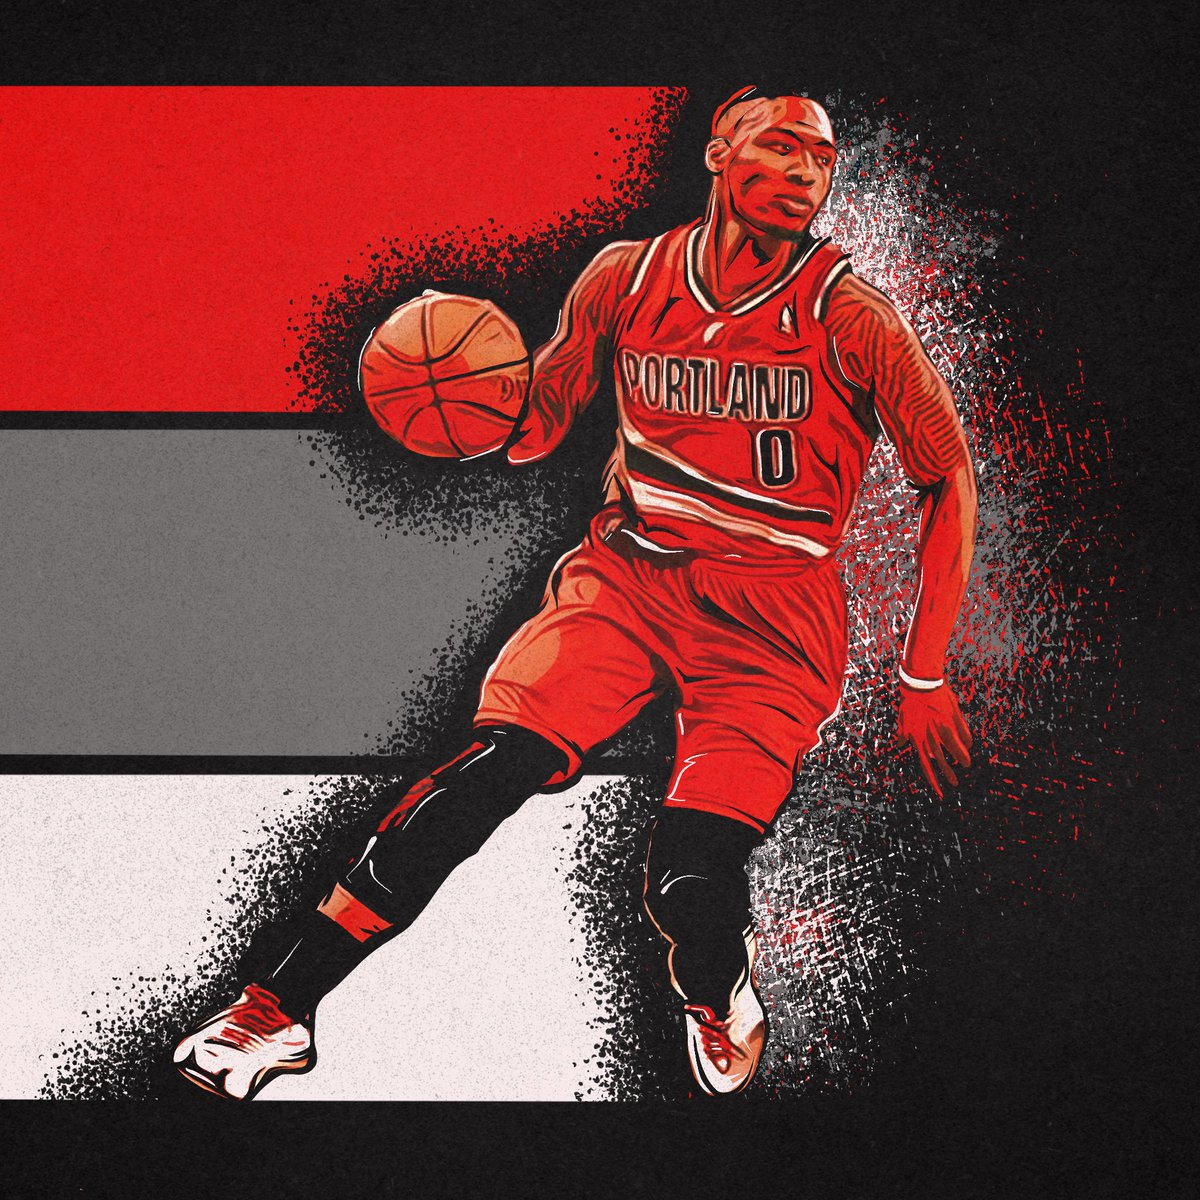 Finished this Dame piece this morning. Sometimes interests cross paths, and it's fun. • #ripcity #damianlillard #adidas